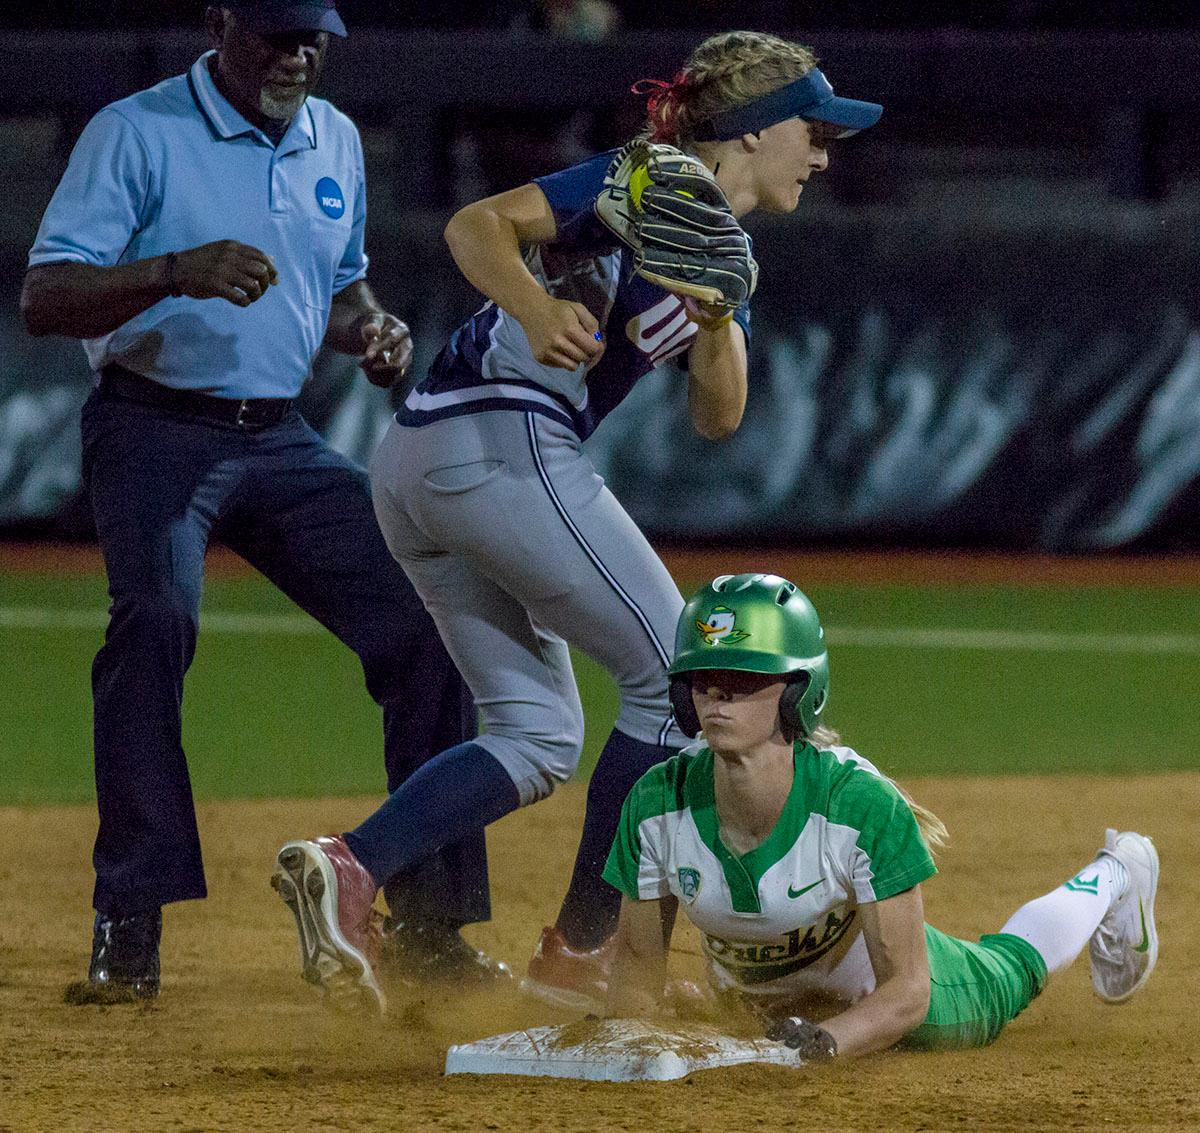 Ducks designated player Alexis Mack (#10) slides in to succesfully steal second base. The No. 3 Oregon Ducks defeated the University of Illinois Chicago Flames 13-0 with the run-rule on Saturday night at Jane Sanders Stadium. The Ducks scored in every inning and then scored nine runs at the bottom of the fourth. The Oregon Ducks are now 22-0 in NCAA regional games. The Oregon Ducks play Wisconsin next on Saturday, May 20 at 2pm at Jane Sanders Stadium. Photo by Aaron Alter, Oregon News Lab